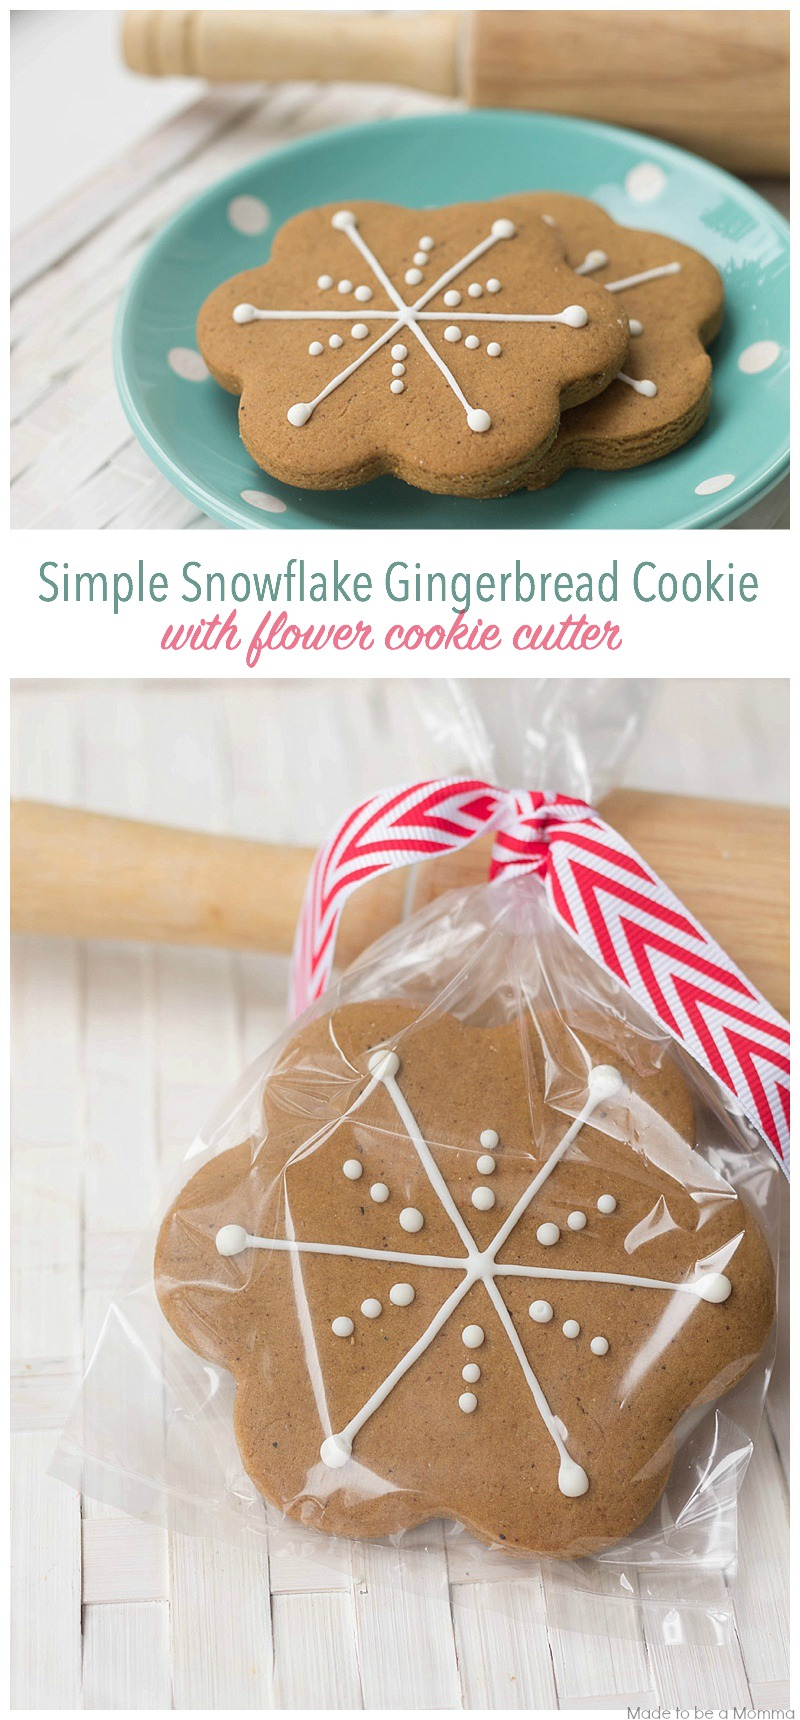 simple snowflake gingerbread cookie with flower cookie cutter